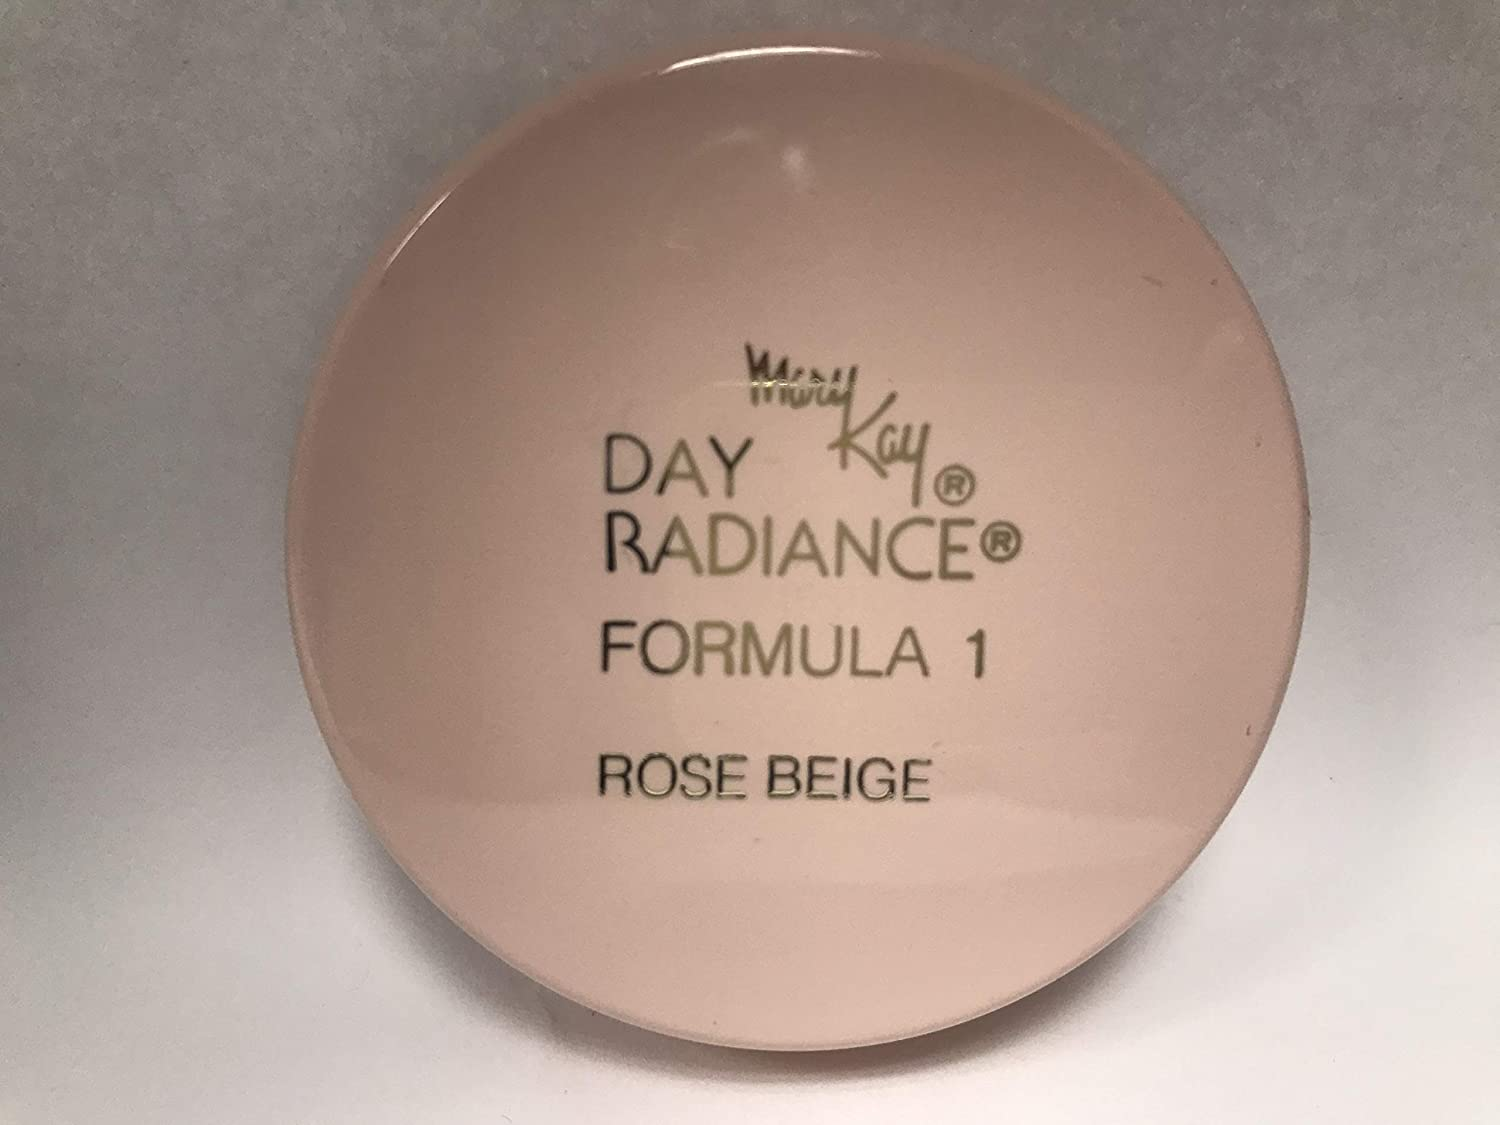 Mary Kay Day Radiance Formula 1 (Vintage Makeup) .50 Oz.